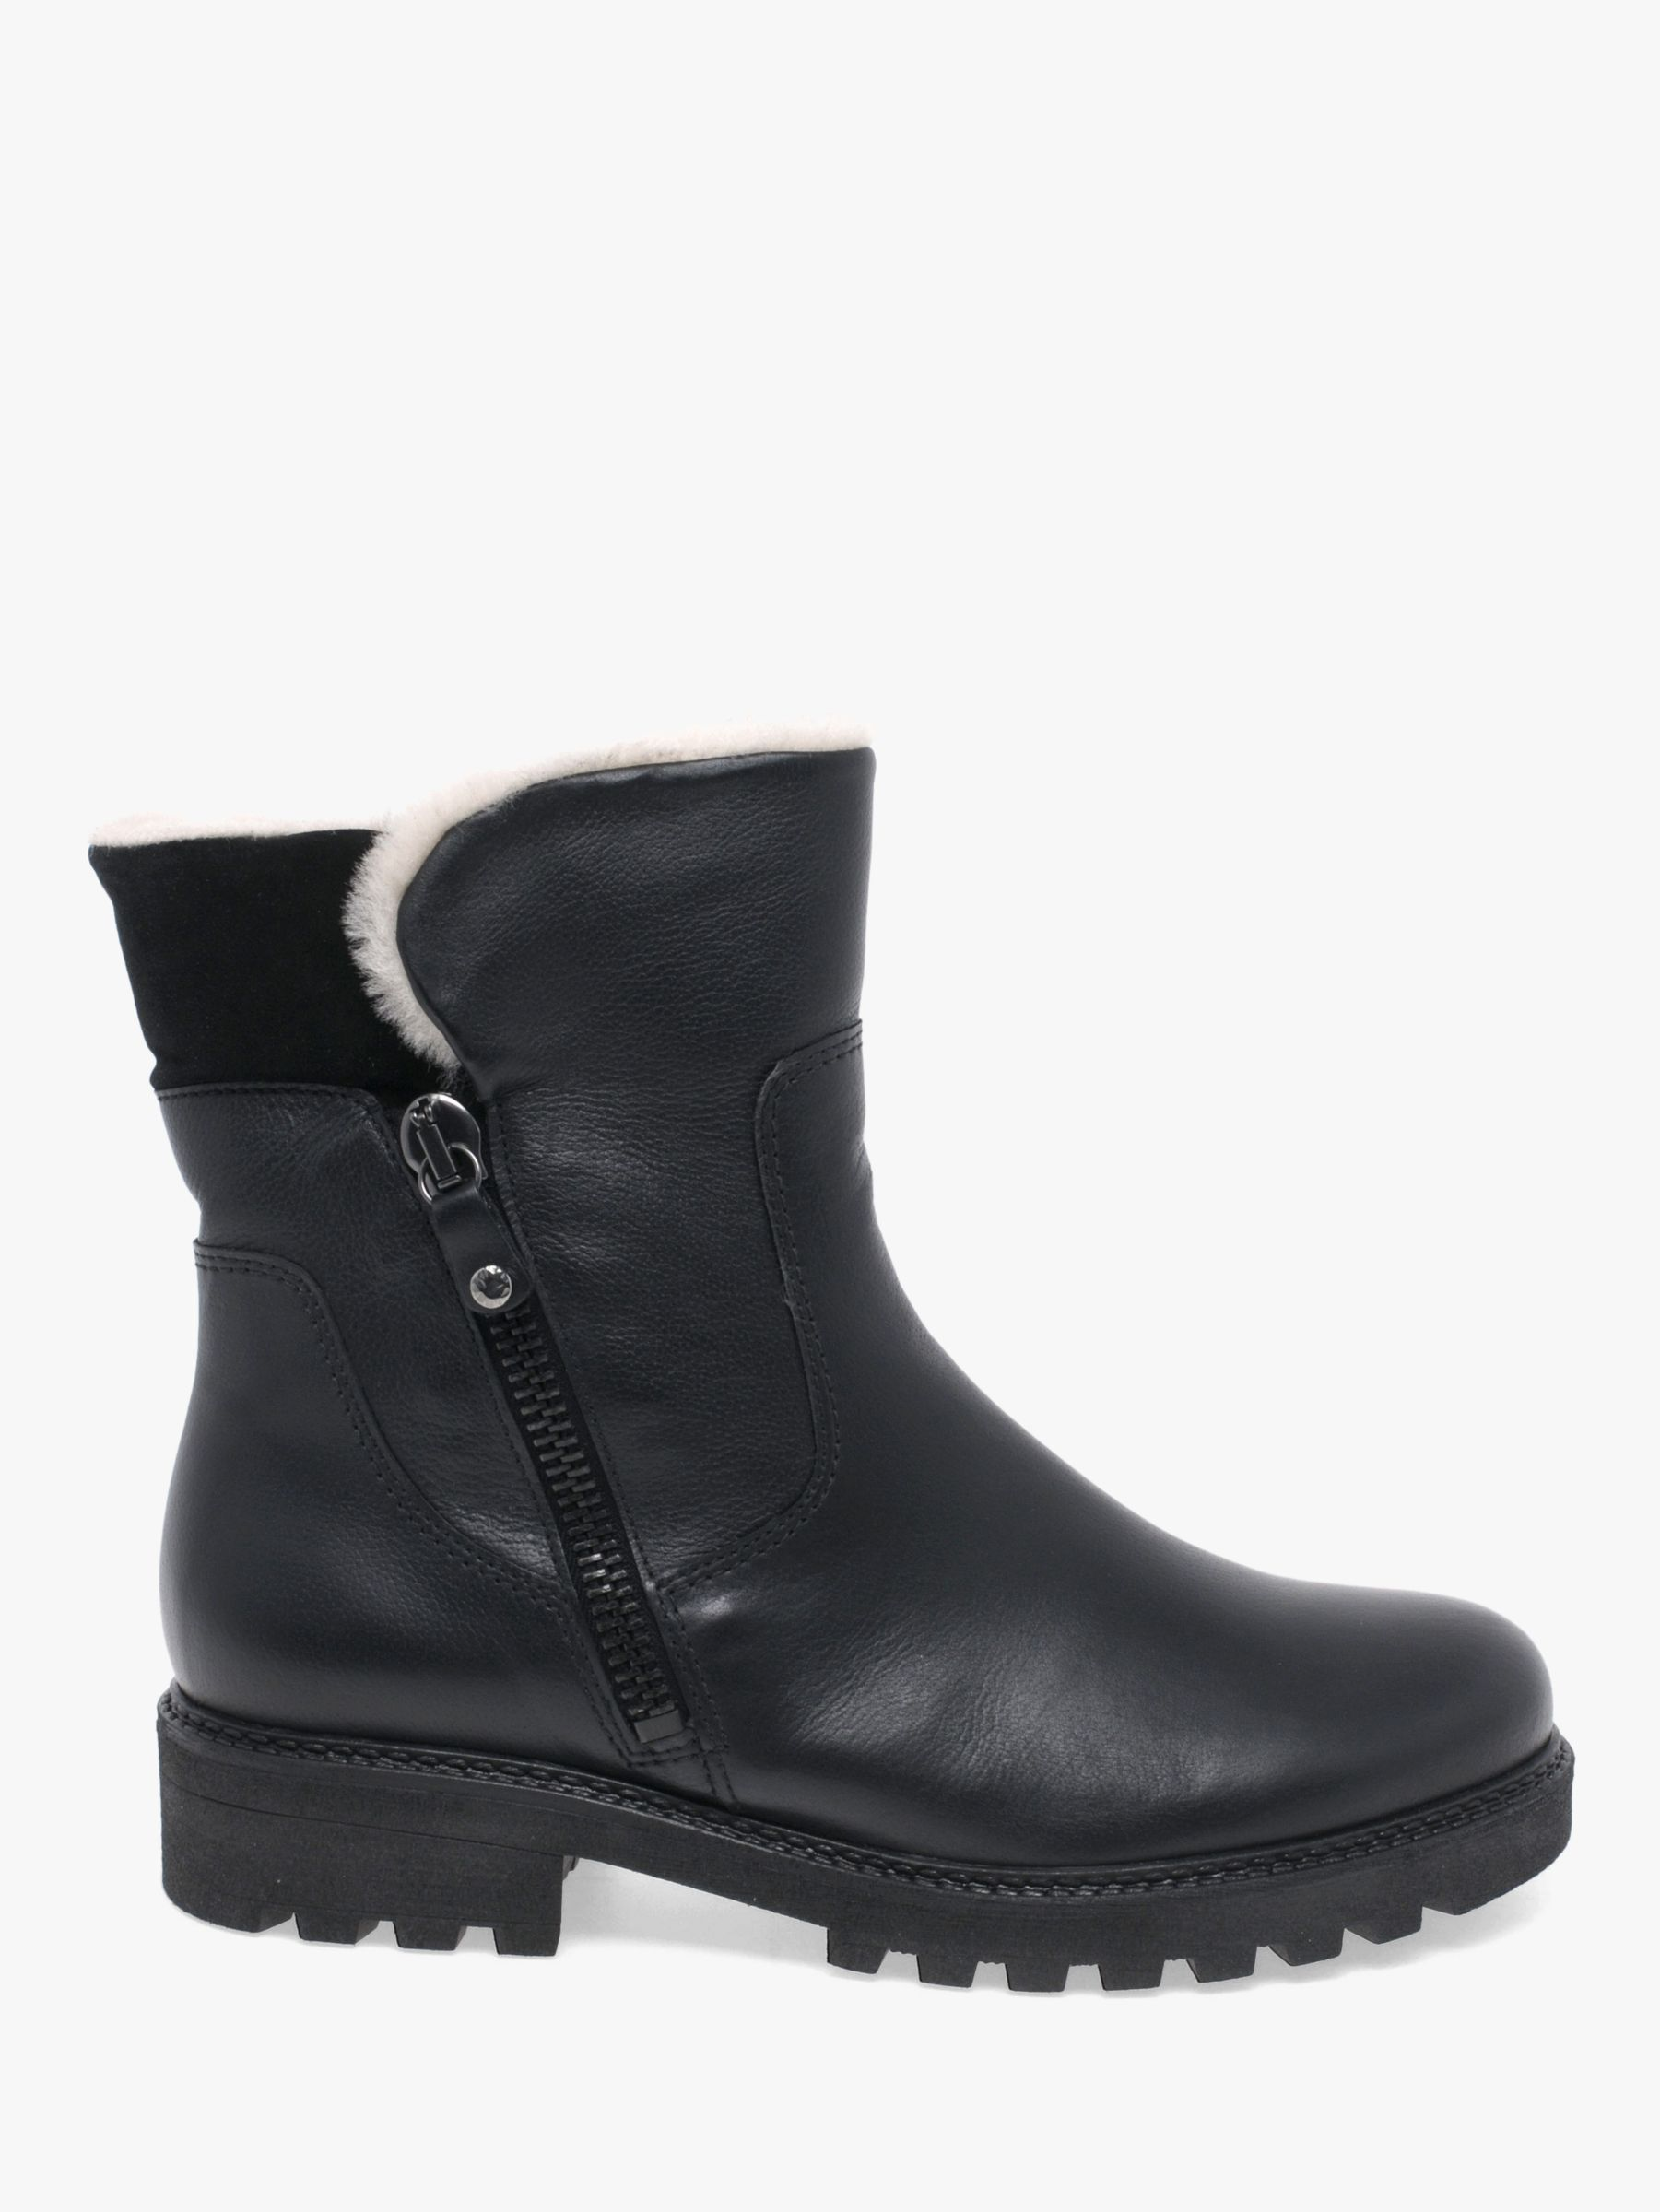 Gabor Gabor Balban Leather Biker Boots, Black